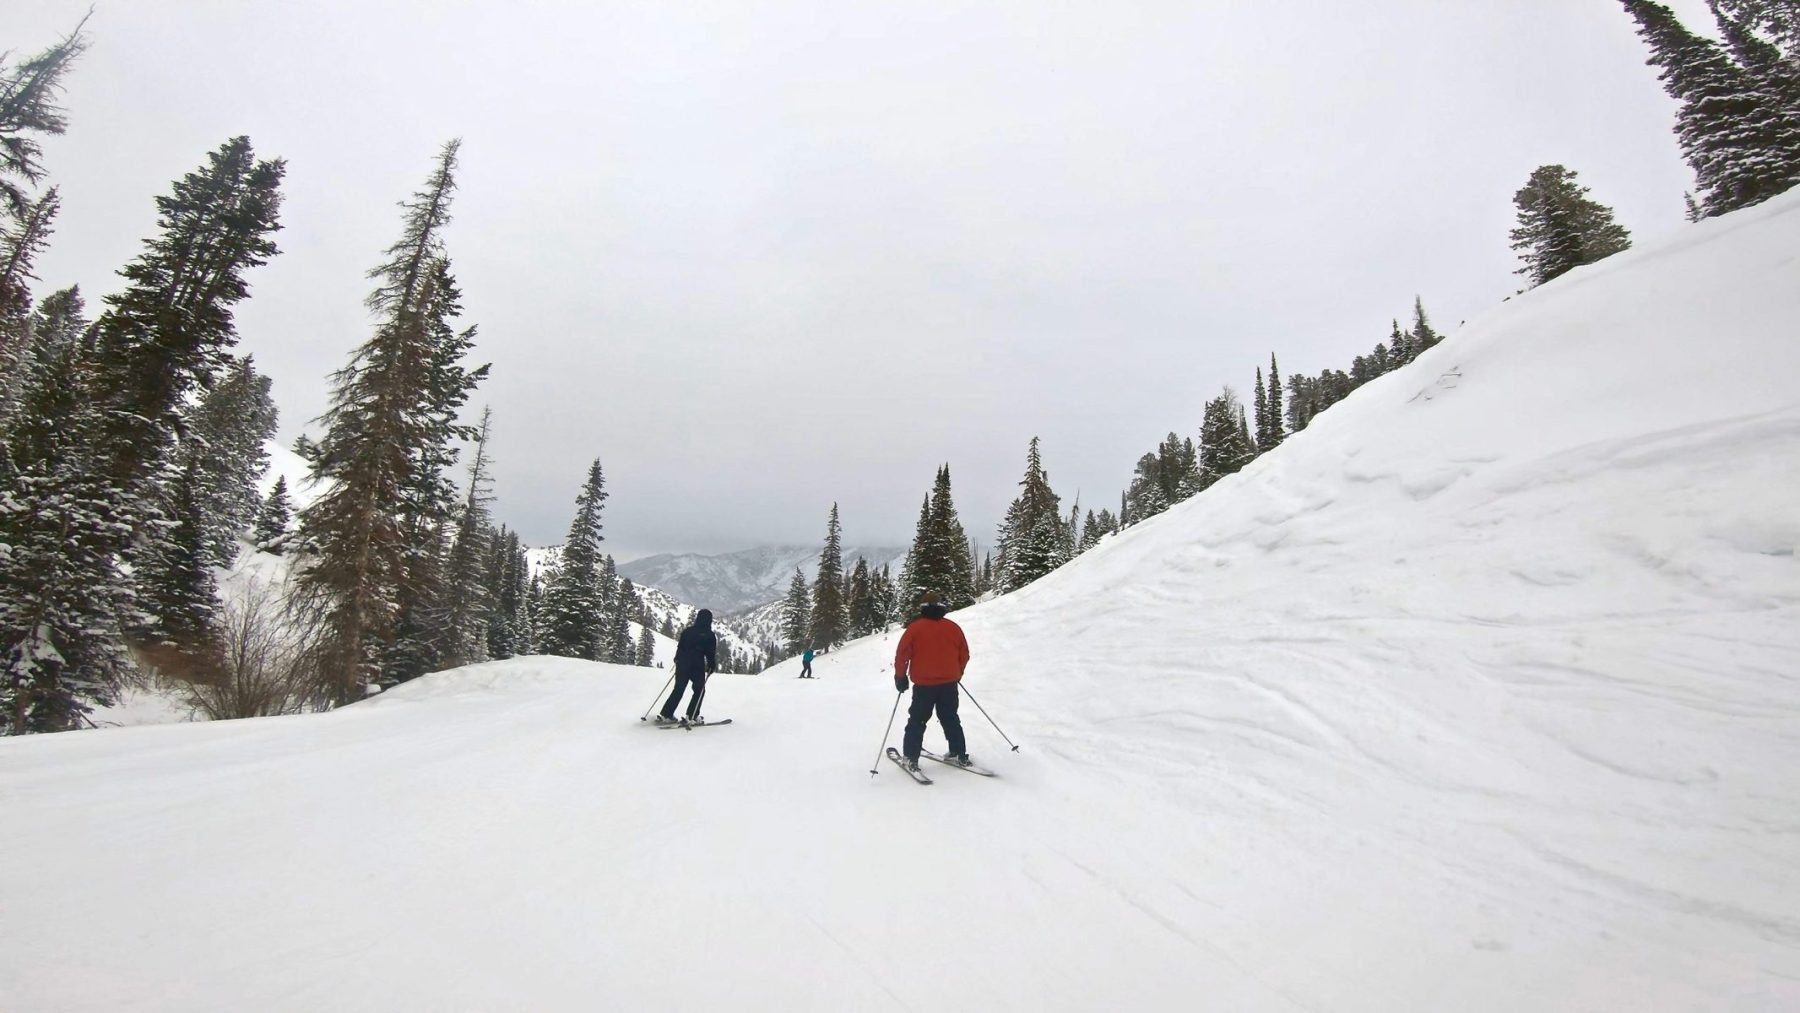 Powder Mountain, baby!